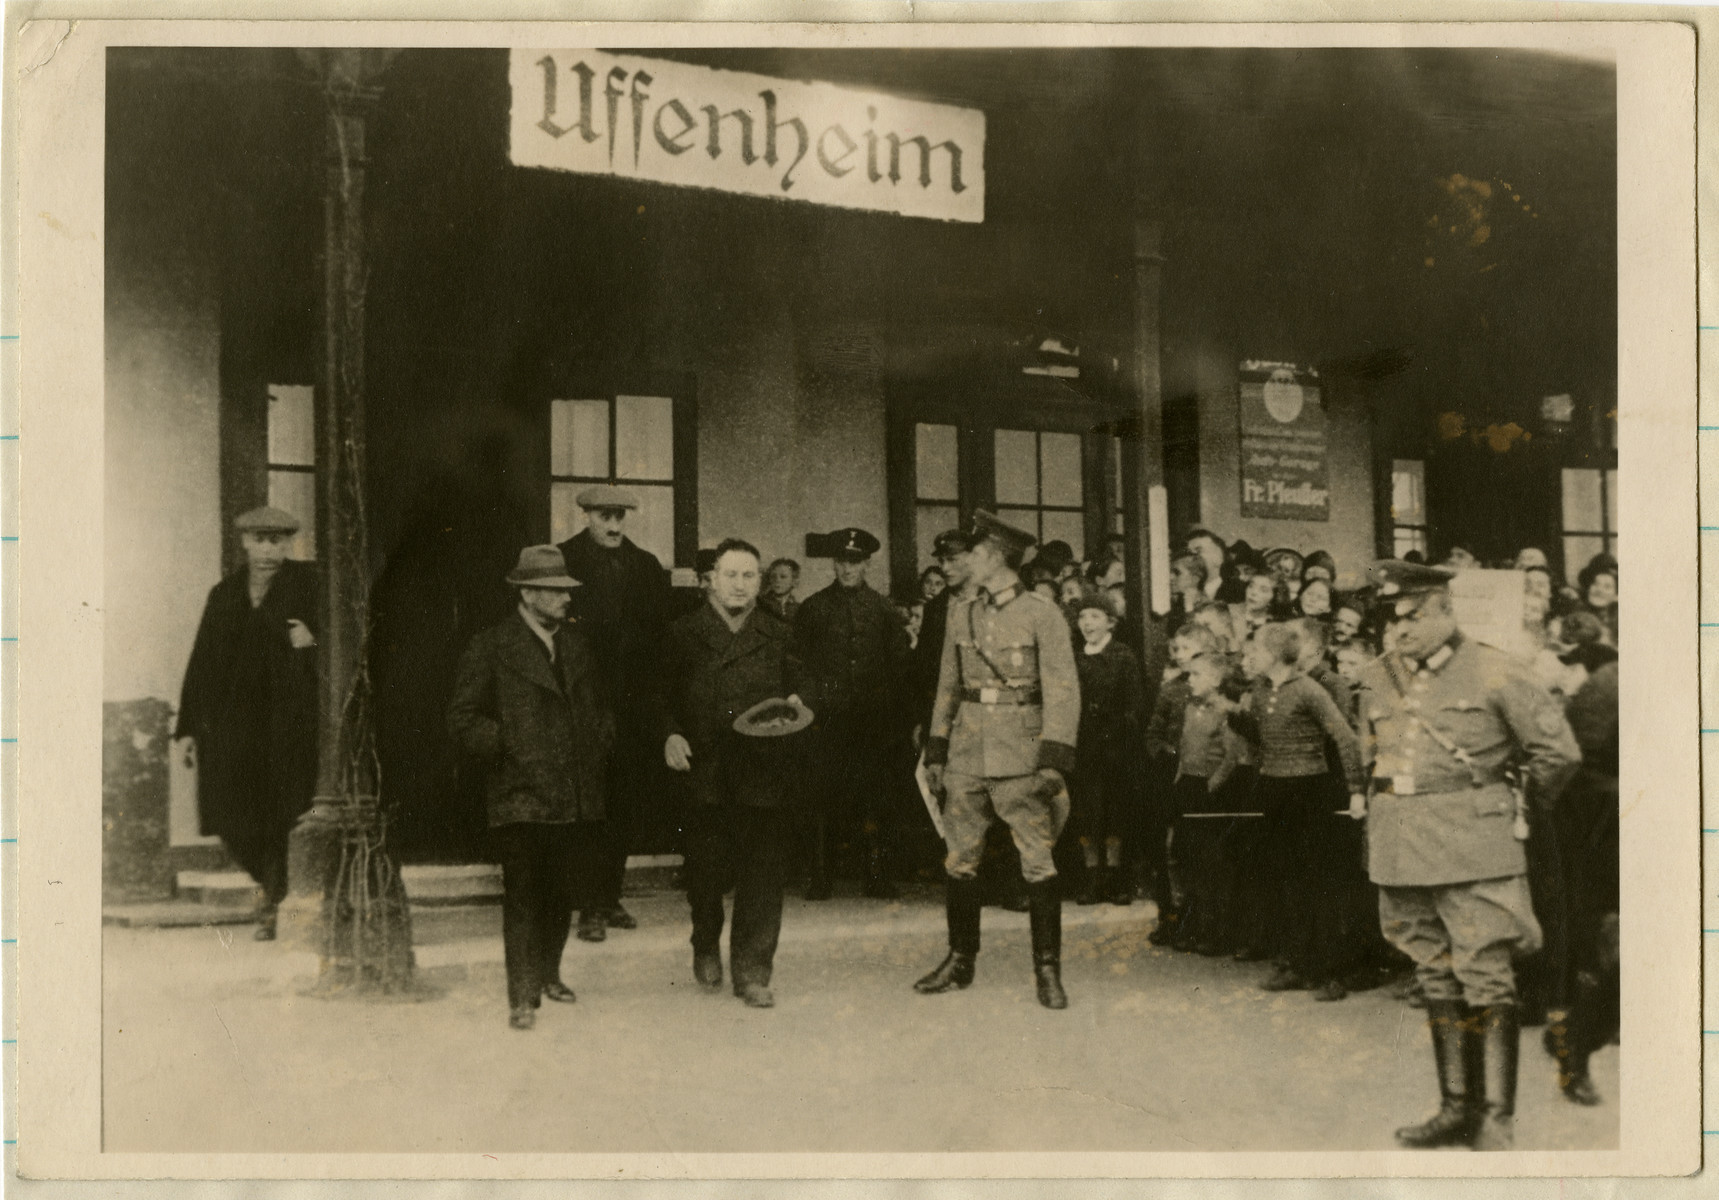 German police stand guard as Jews are driven out of Uffenheim while a group of children gathers to stare at what is transpiring.